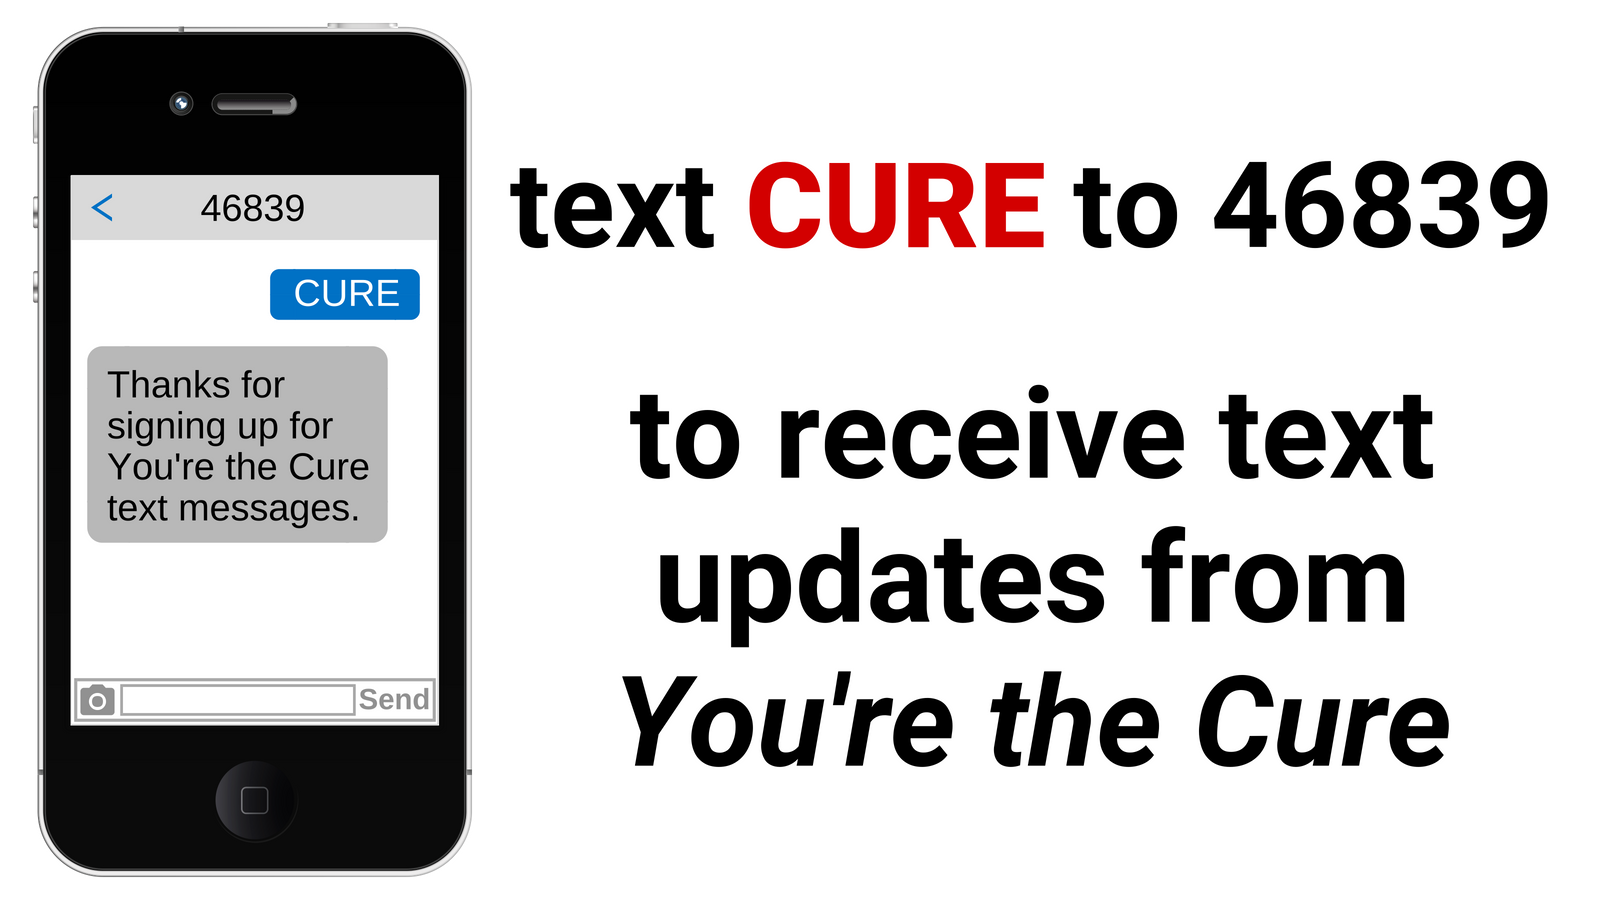 Join our text alerts! Text CURE to 46839